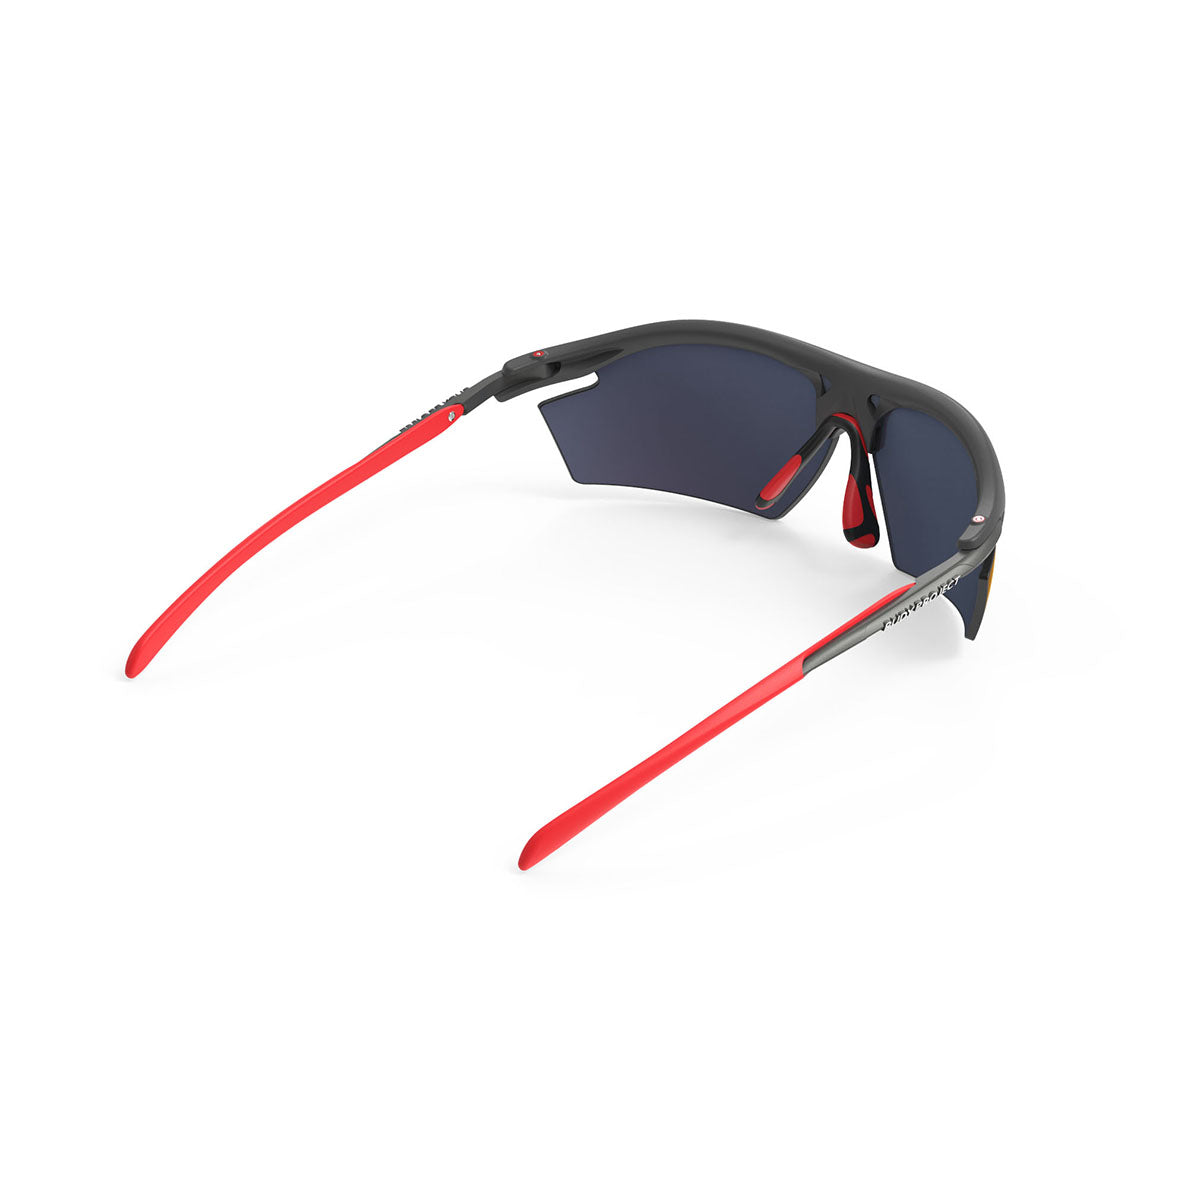 Rudy Project - Rydon - frame color: Graphite Multicolor Red - lens color: Multilaser Red - photo angle: Top Back Angle Variant Hover Image